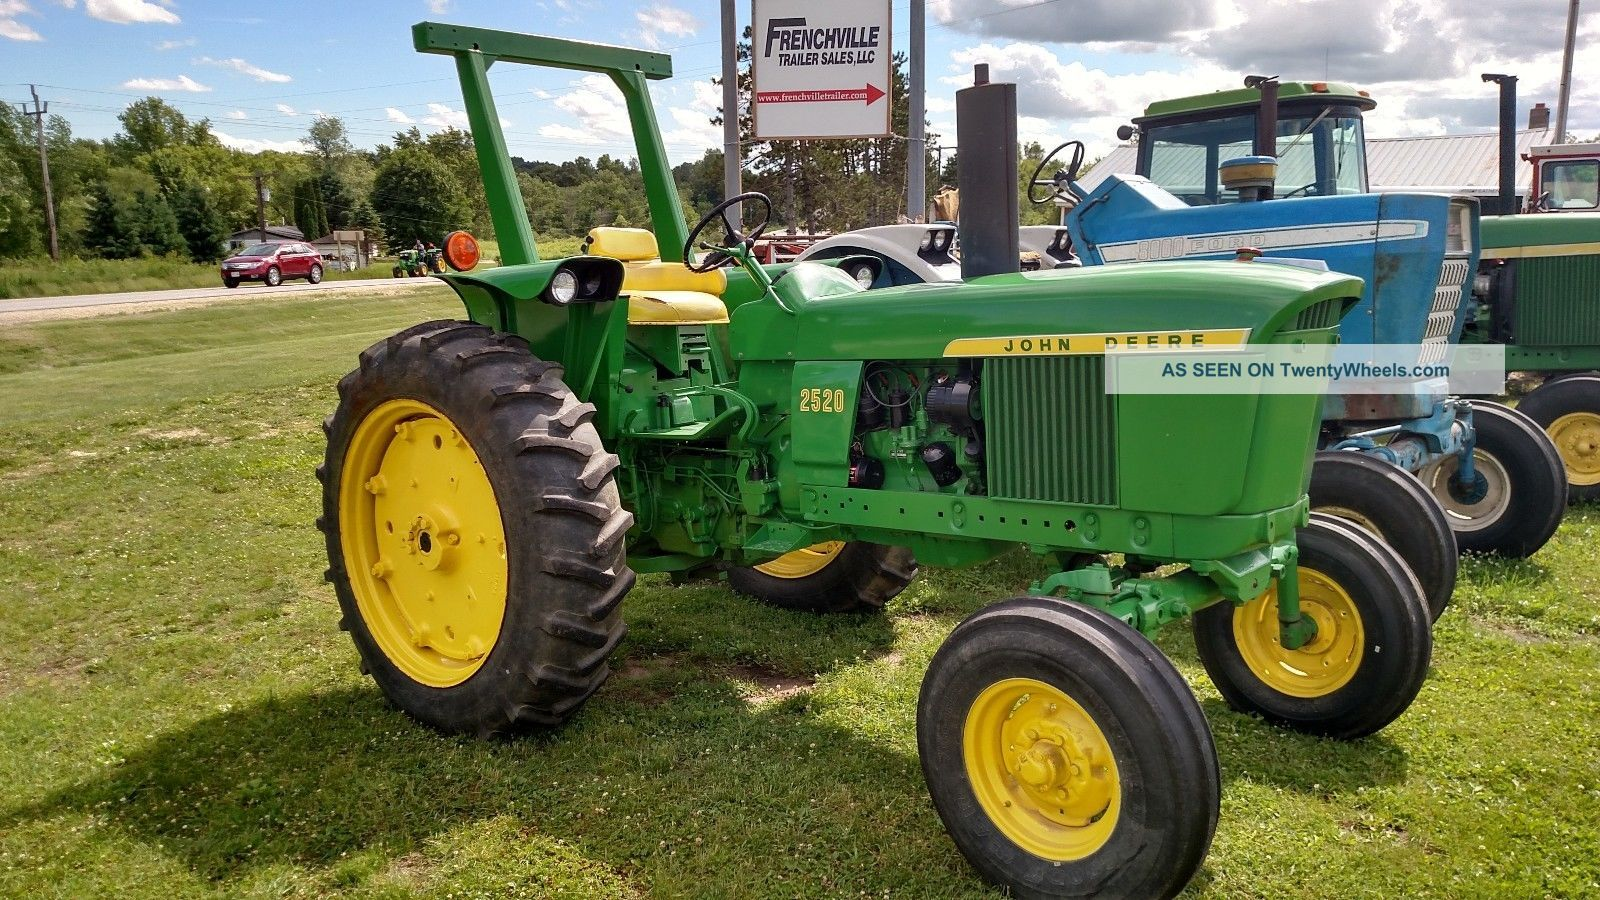 Towingaurorail moreover Equipment Leasing together with Farm Trailer ATV Trailer Cartrailer in addition 37920 1972 john deere 2520 tractor further Youve Got To See This Peterbilt Semi Truck Drag Race. on tractor dump trailers